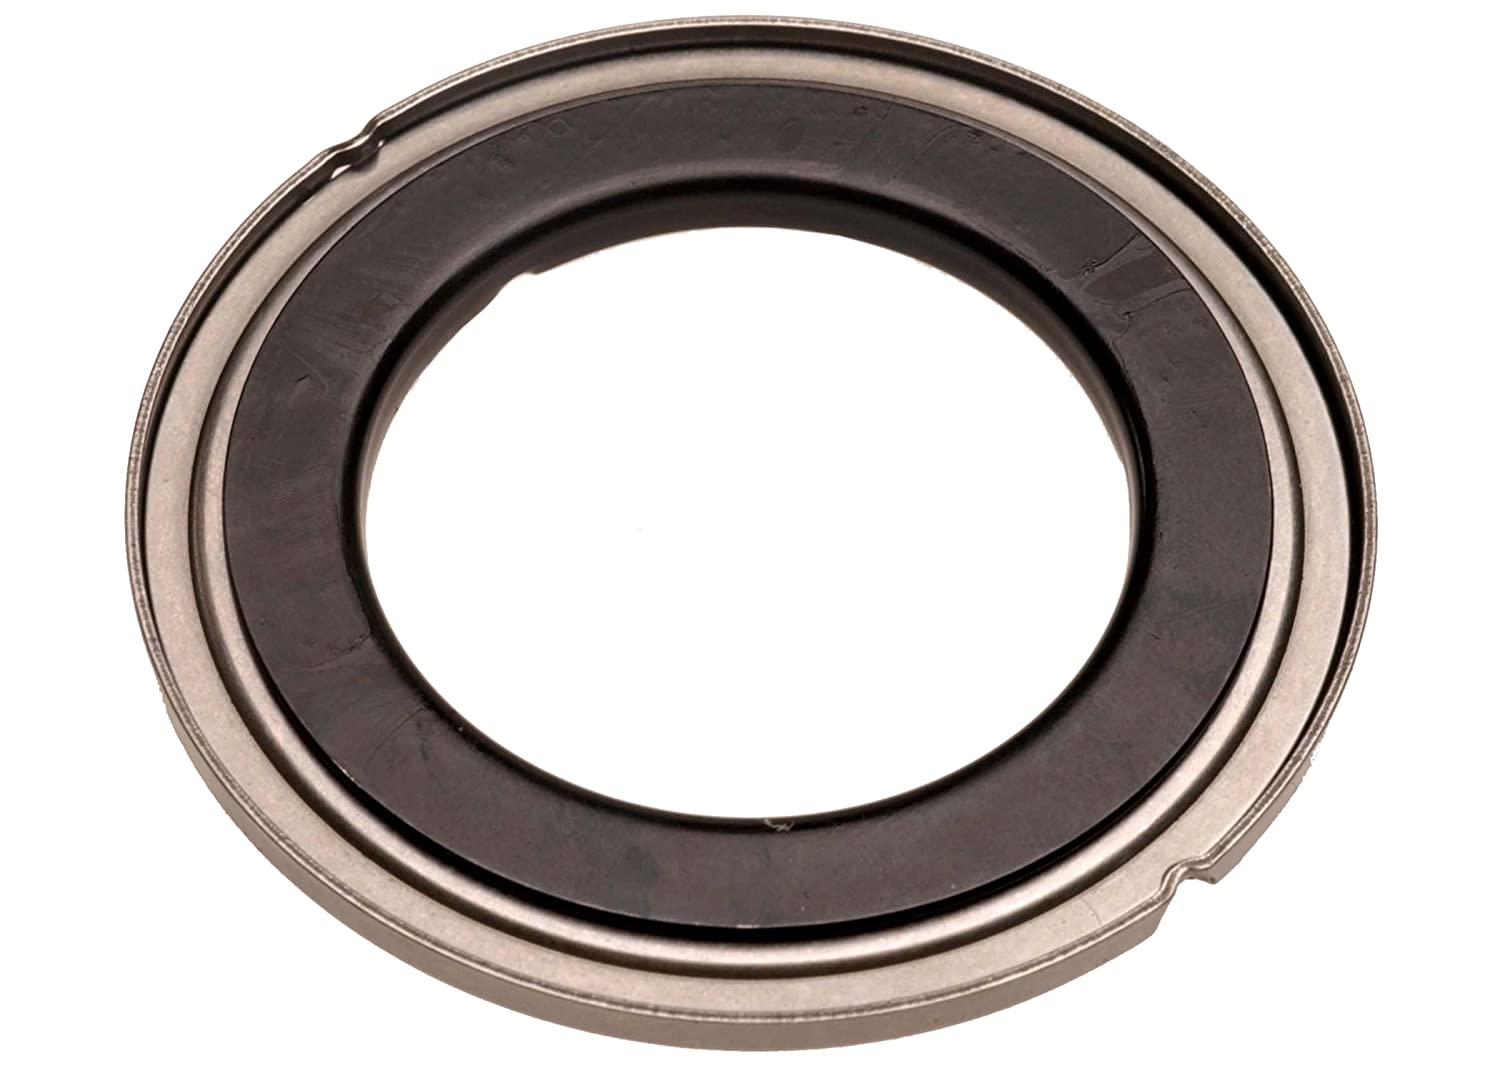 ACDelco 8642066 GM Original Equipment Automatic Transmission Reverse Input Clutch Housing Thrust Bearing